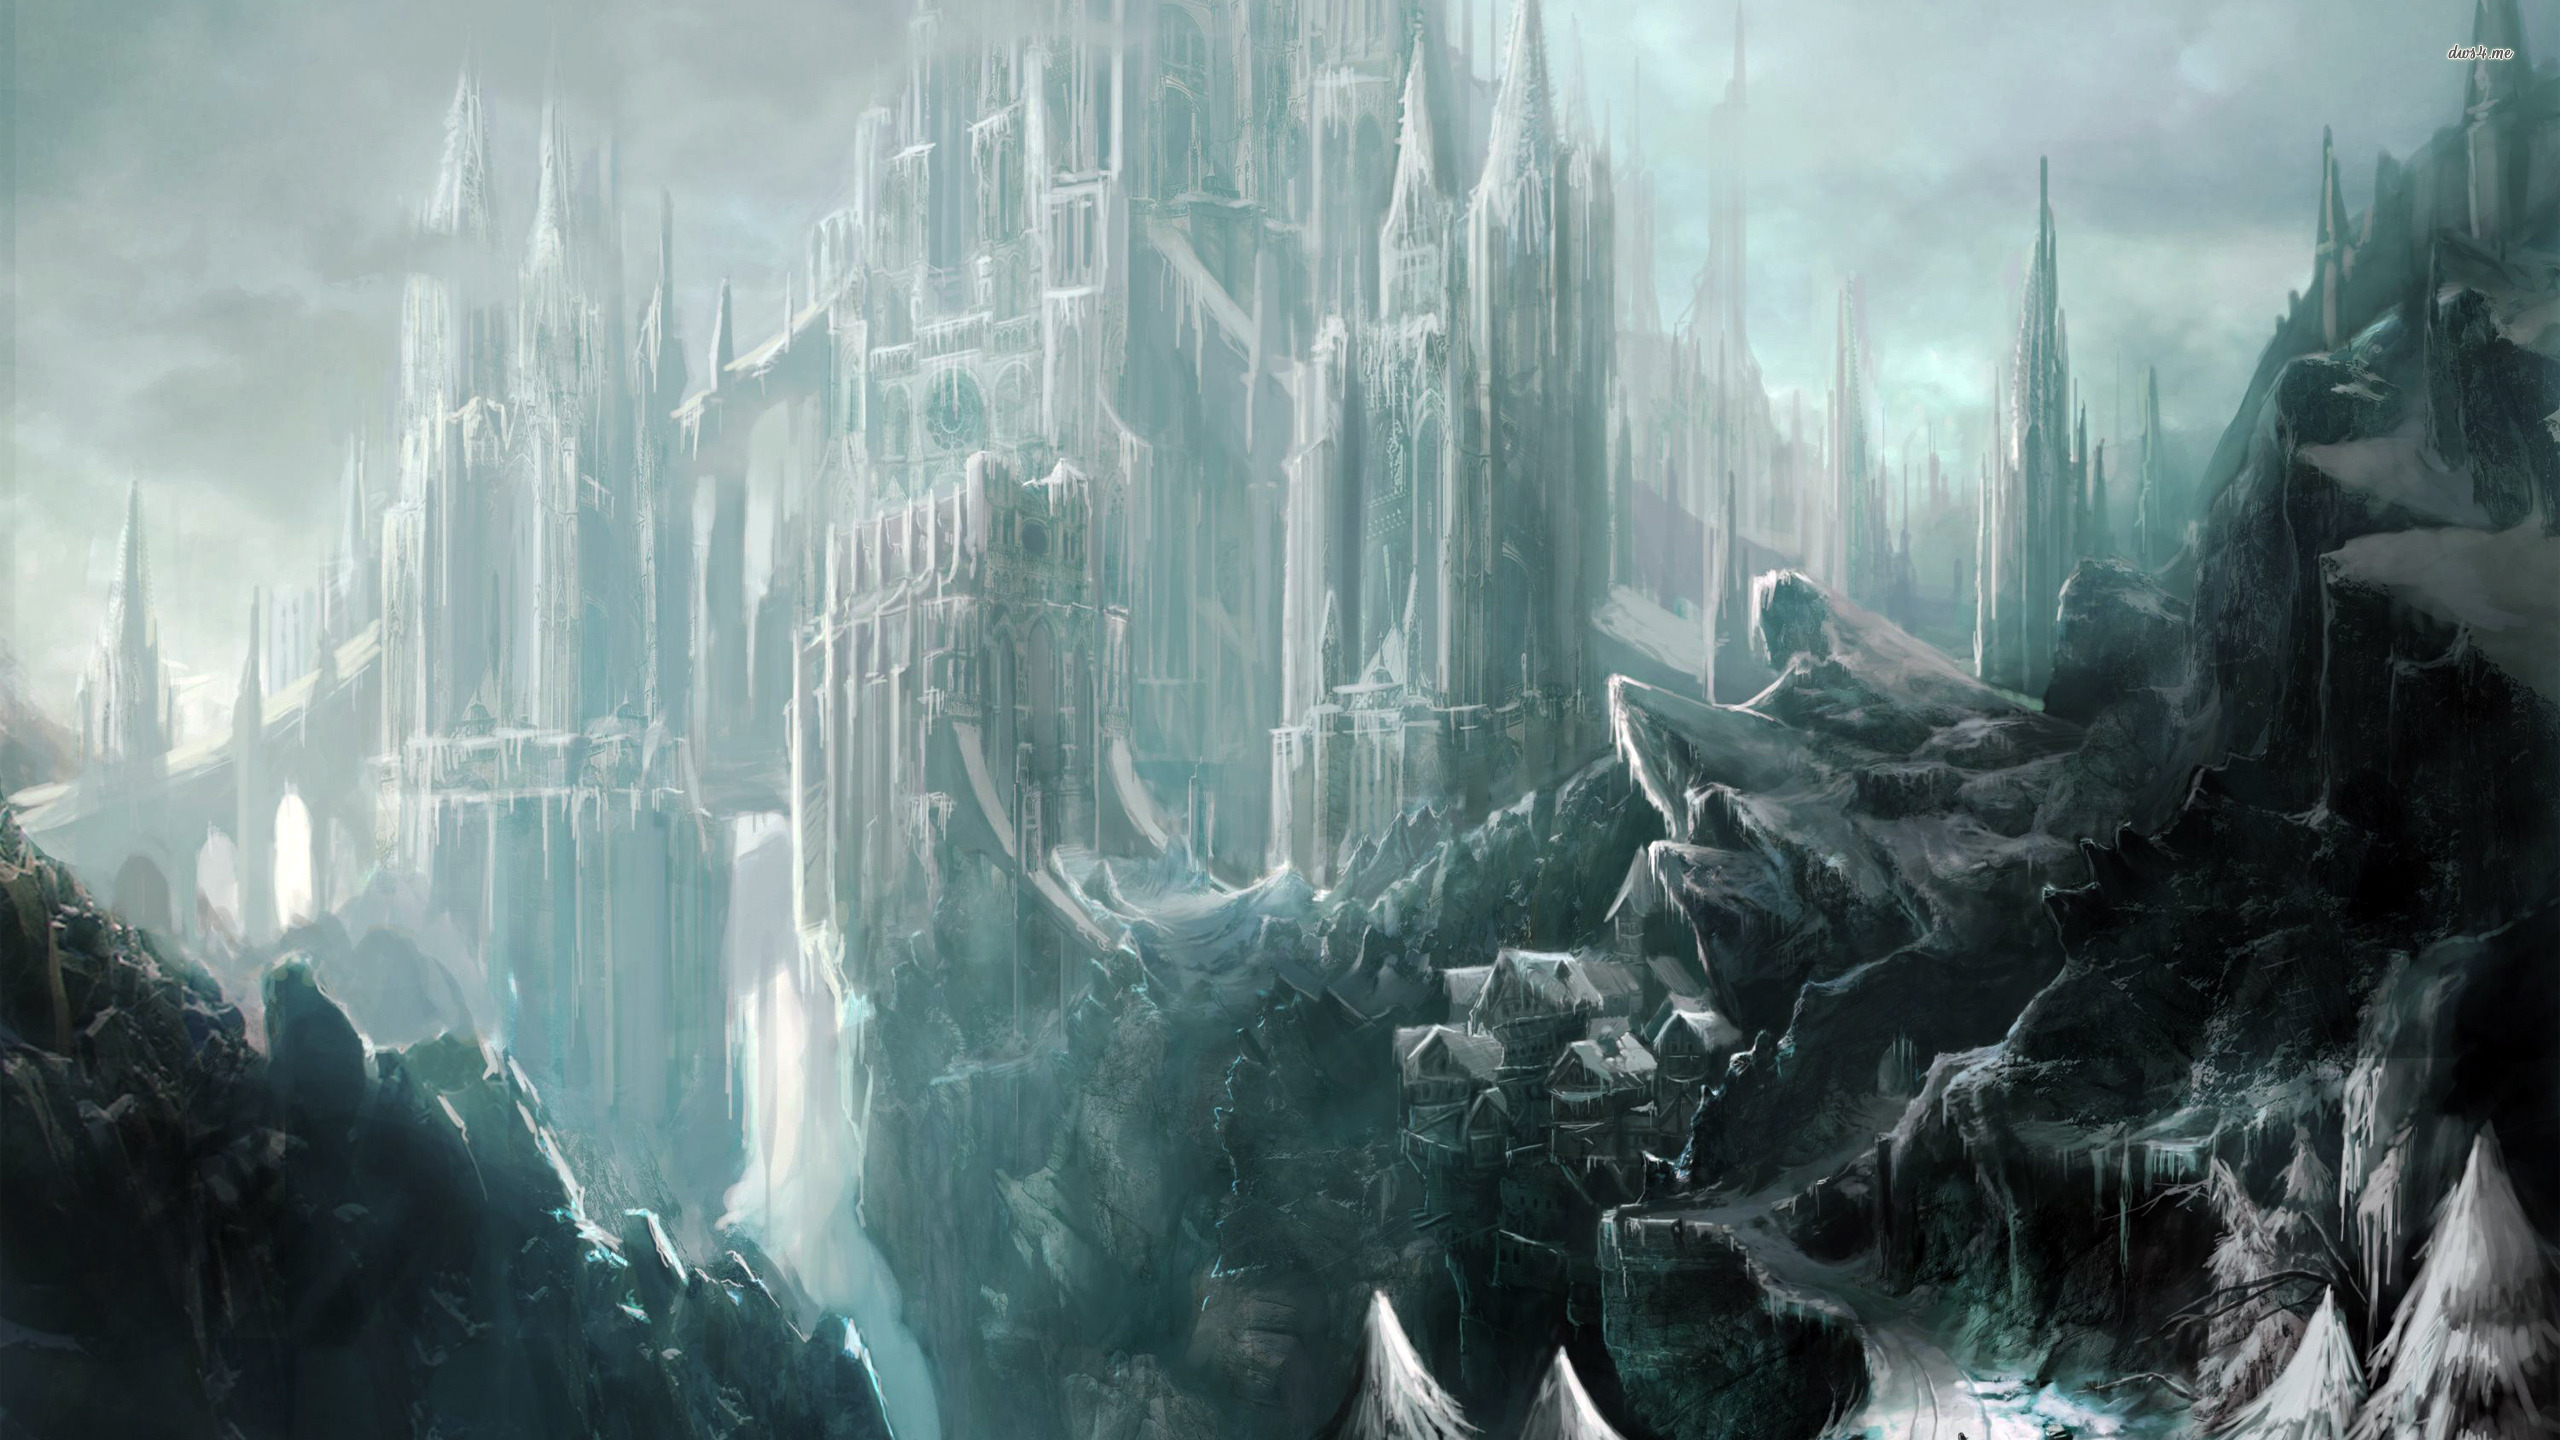 9274-ice-castle-2560x1440-fantasy-wallpaper.jpg